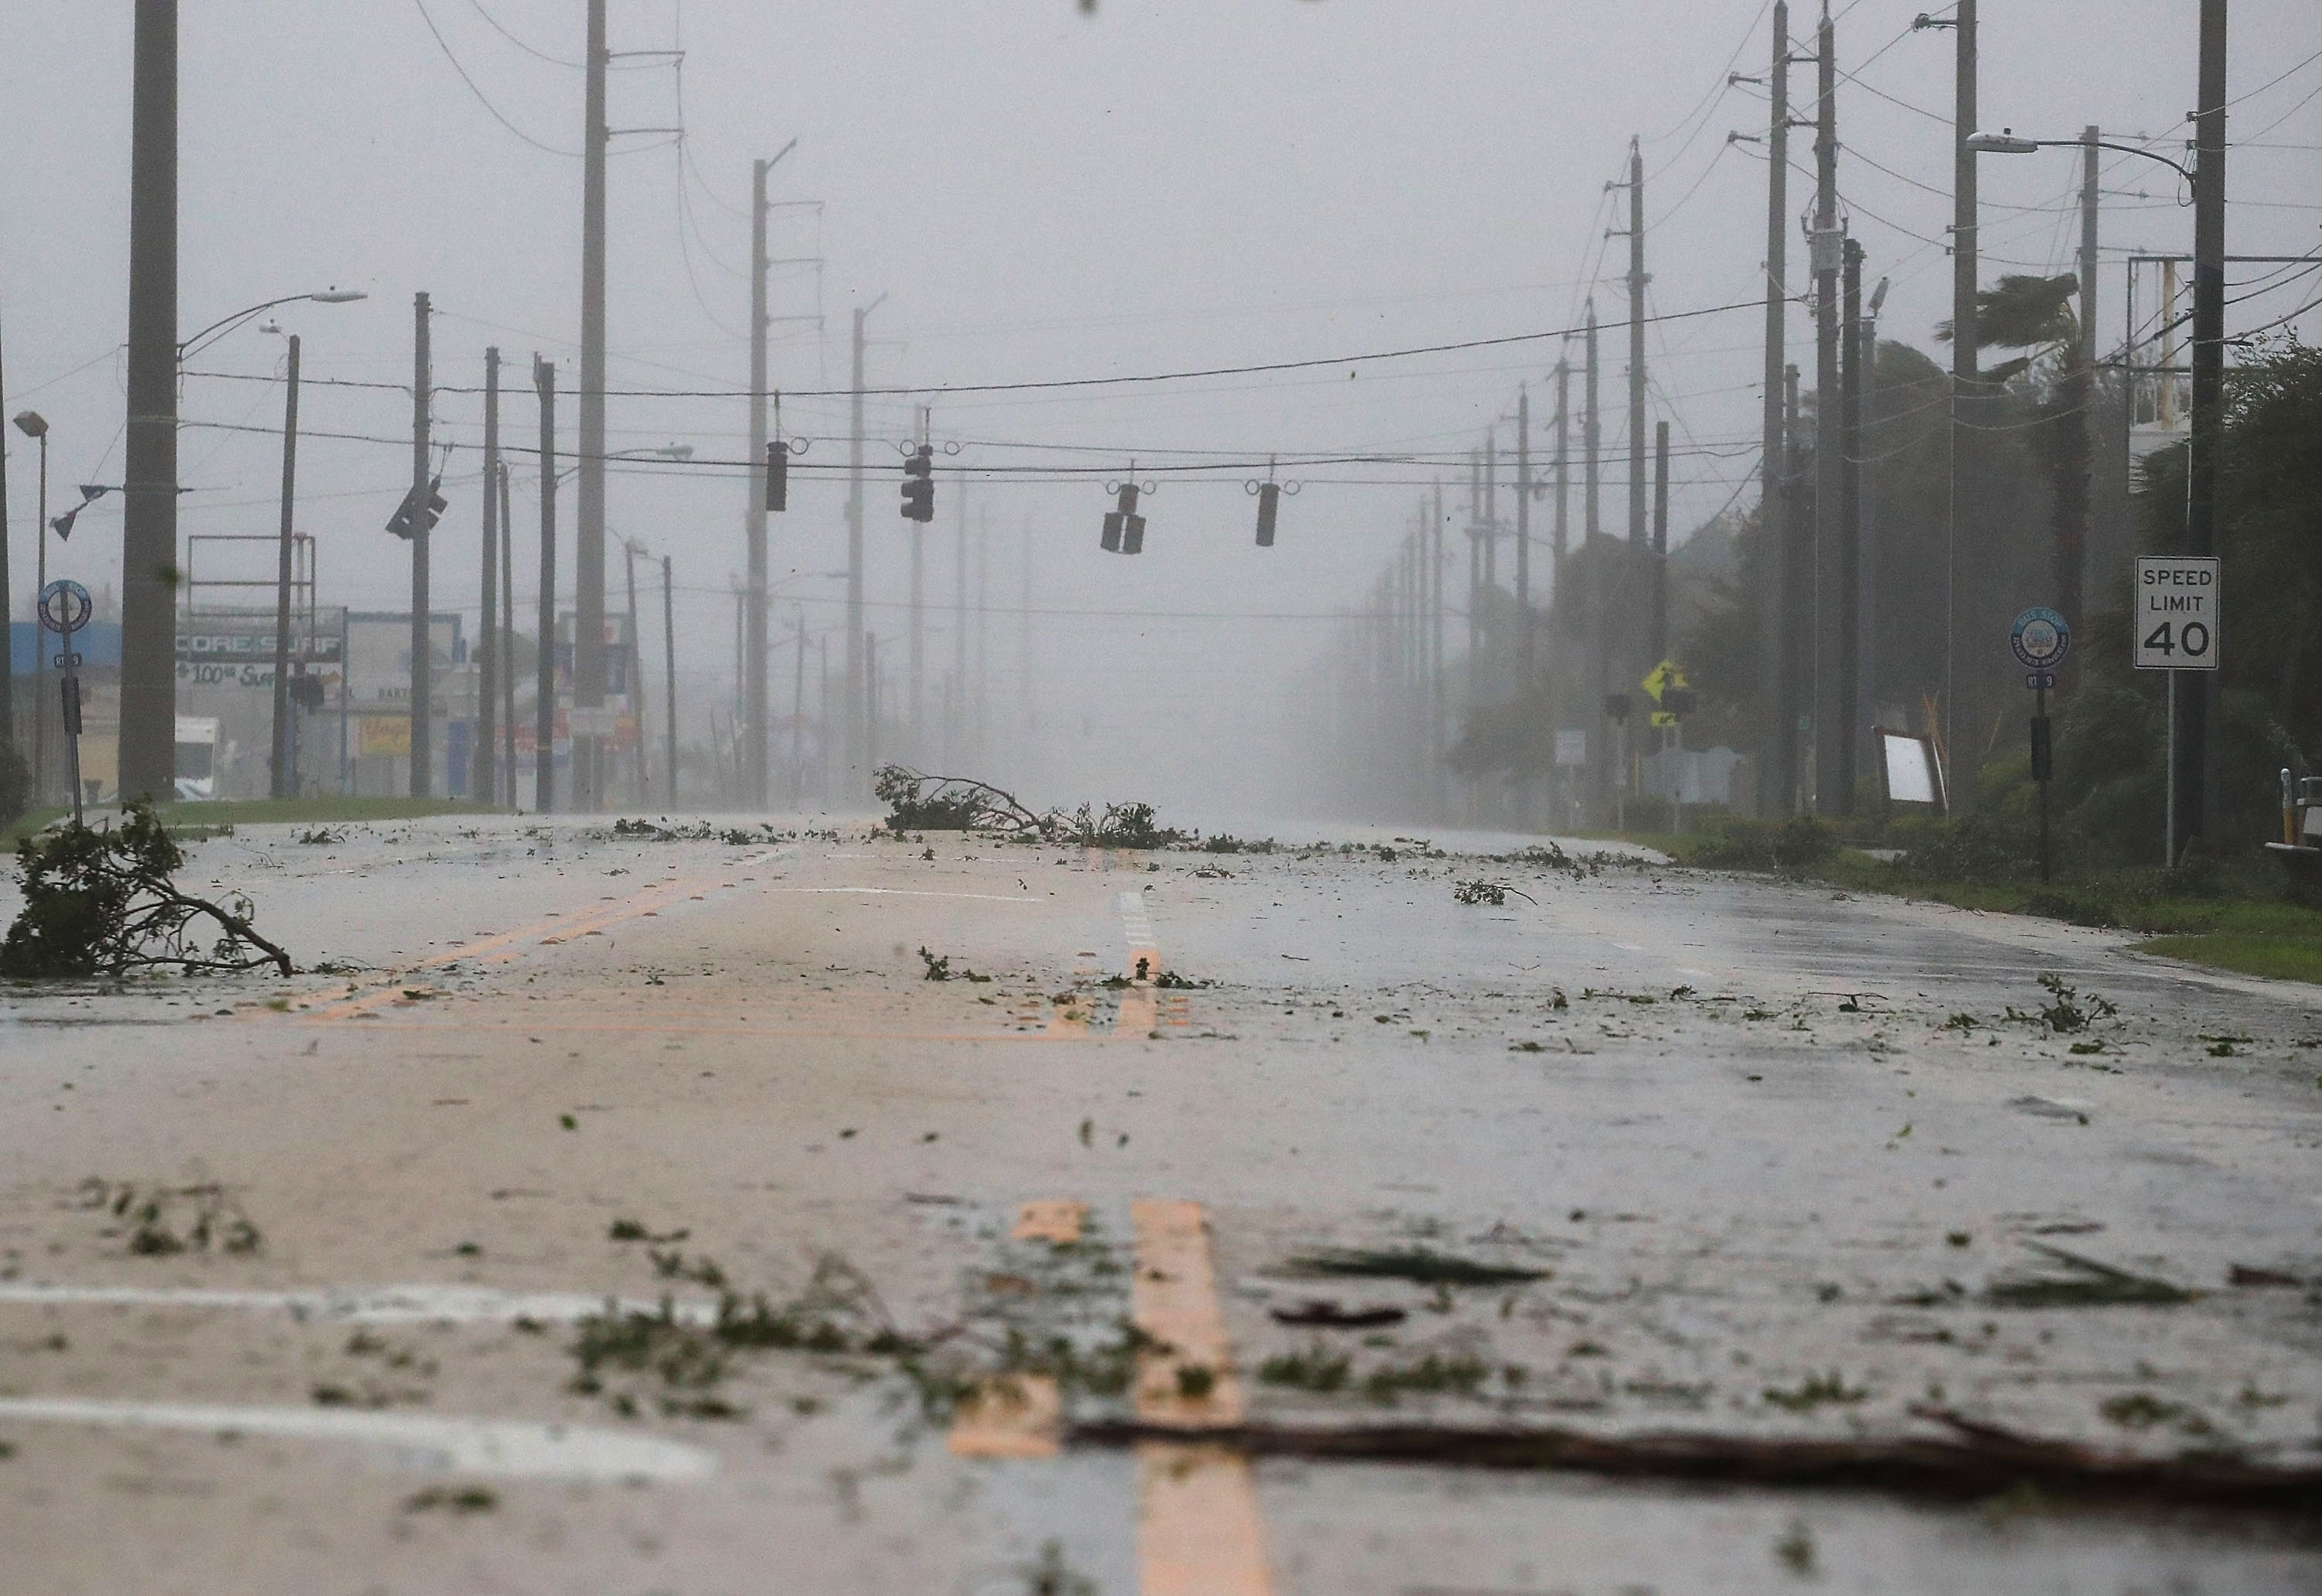 Lights are out on highway A1A from the winds of Hurricane Matthew, October 7, 2016 on Cocoa Beach, Florida. Hurricane Matthew passed by offshore as a catagory 3 hurricane bringing heavy winds and minor flooding.  (Getty Images)